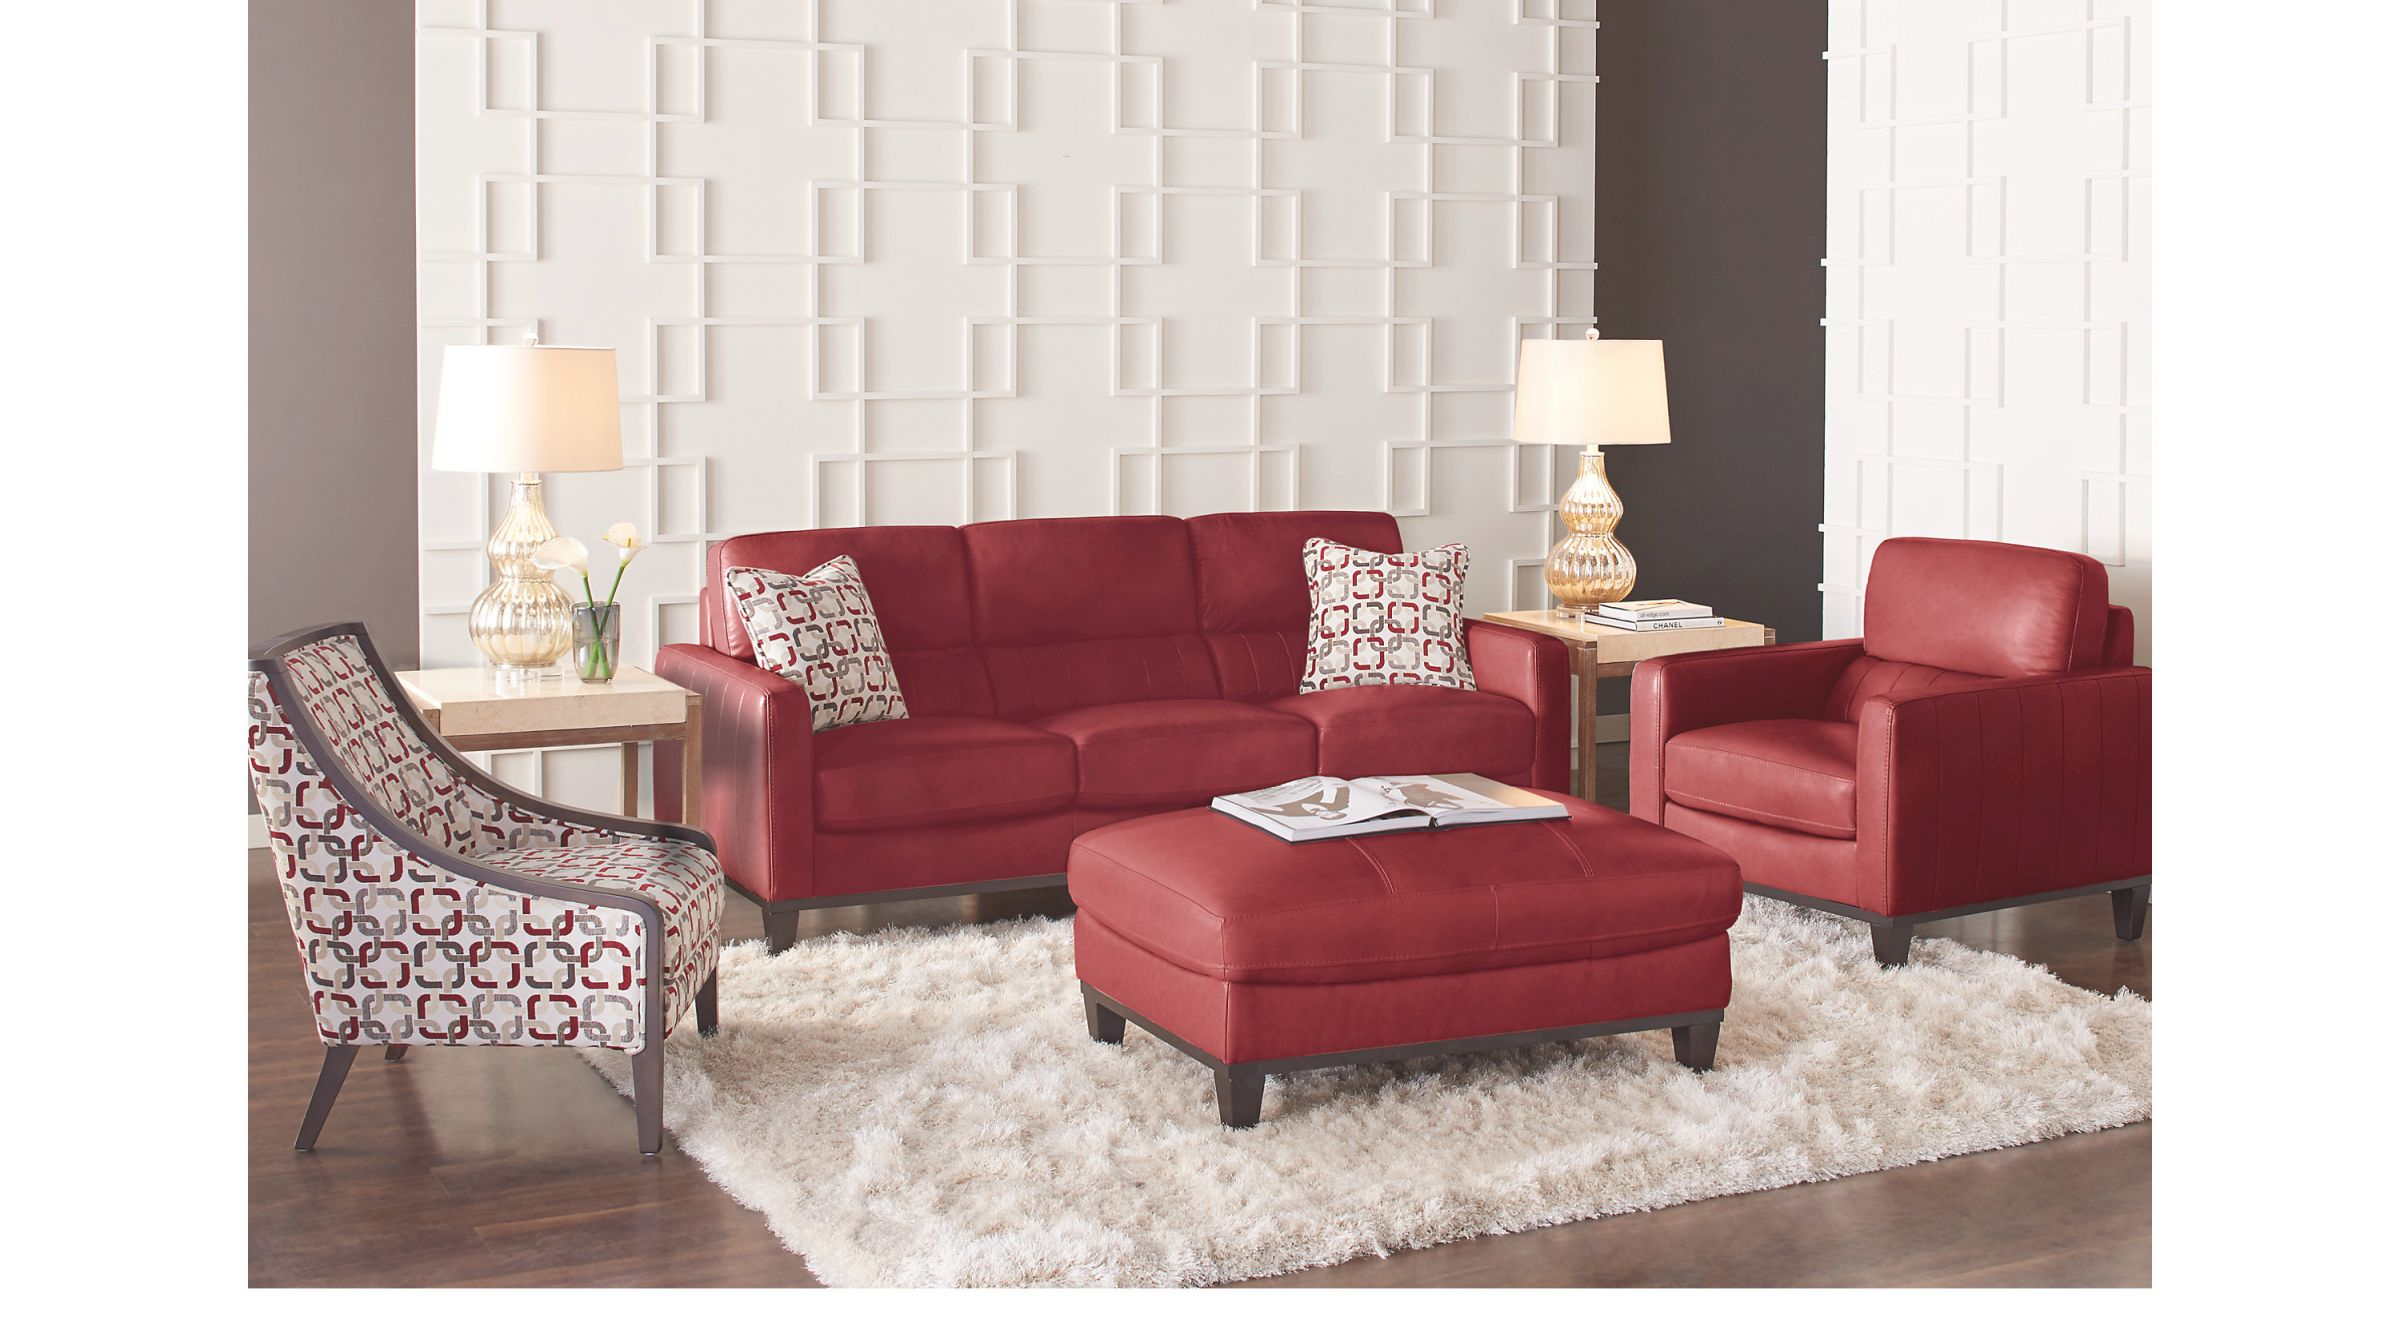 Prospect Park Red Leather 4 Pc Living Room with regard to Brown And Red Living Room